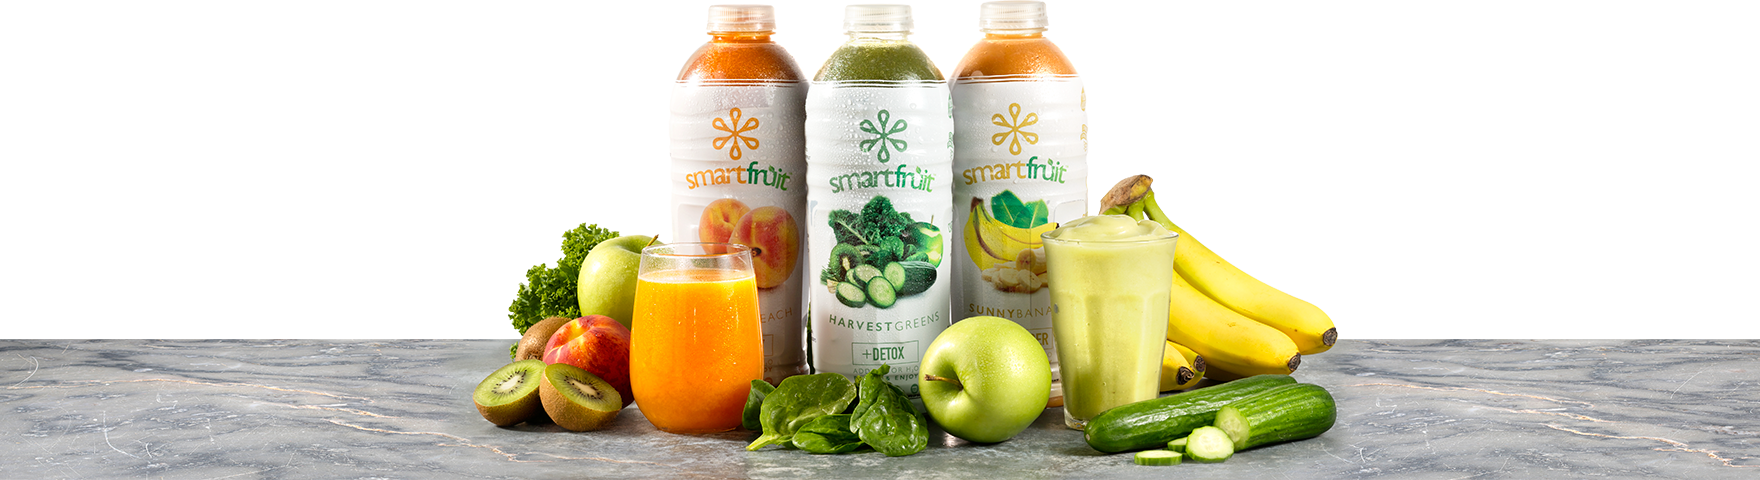 SmartFruit Hero Bottles